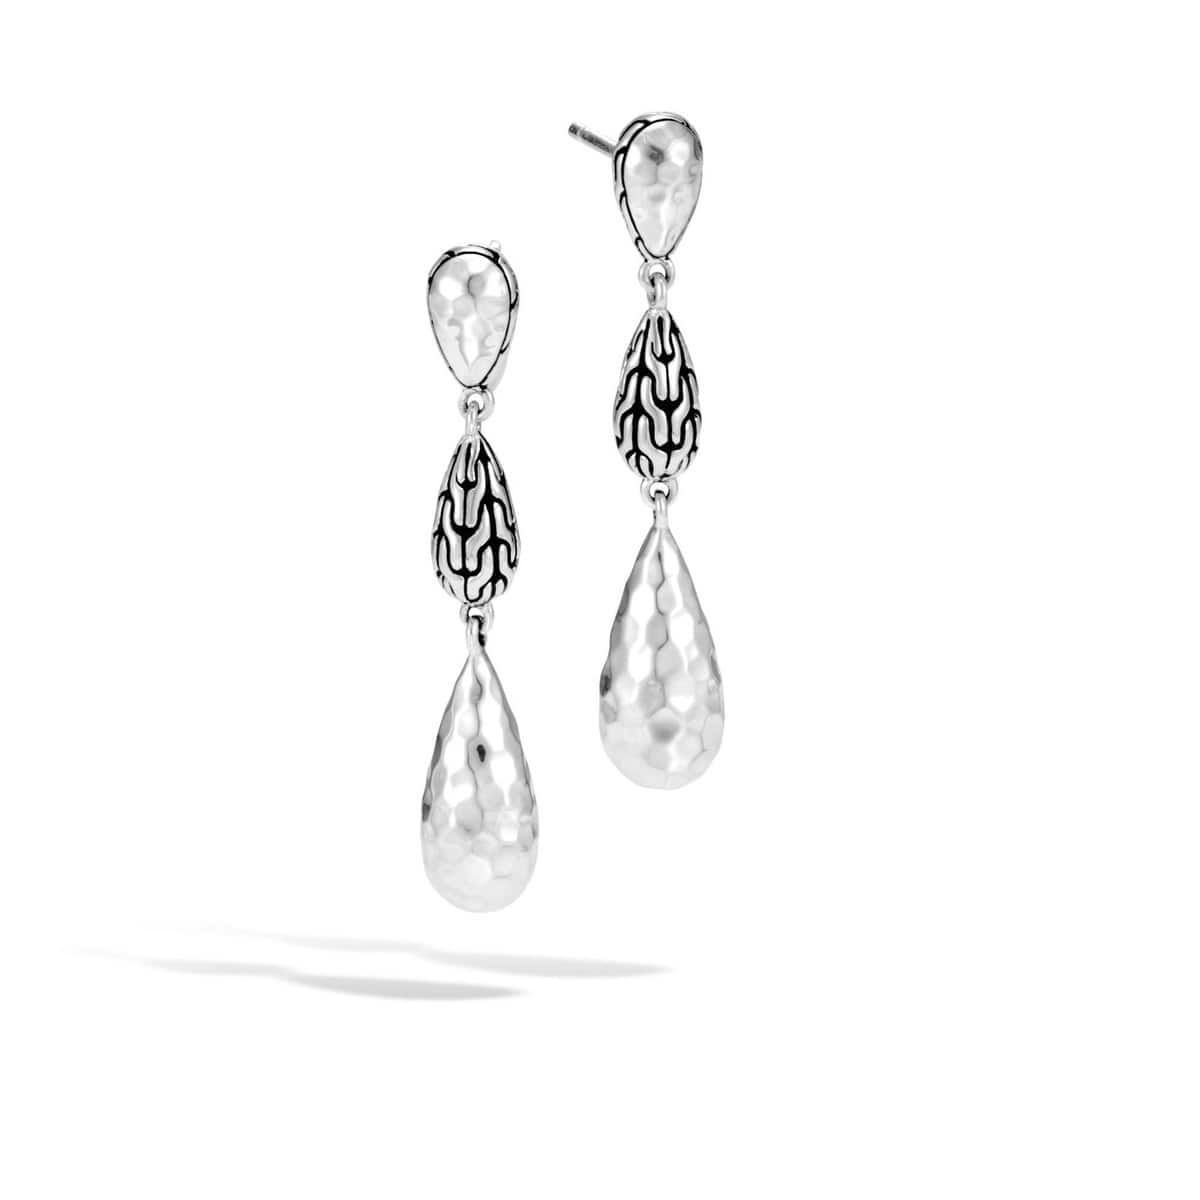 Classic Chain Hammered Silver Long Drop Earrings - EB94547-John Hardy-Renee Taylor Gallery